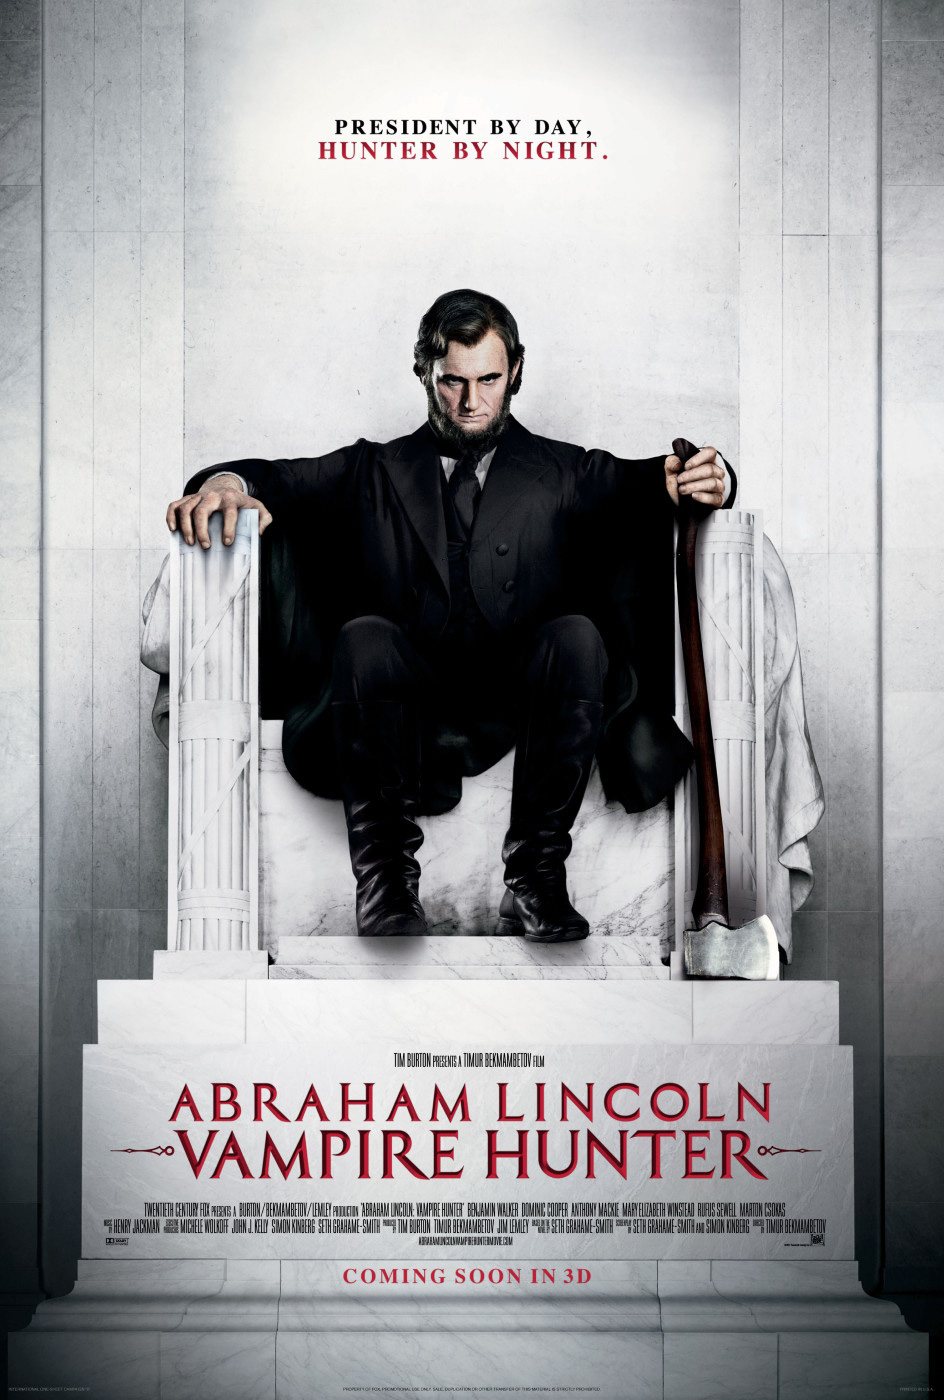 http://cinemateaser.com/wordpress/wp-content/uploads/2012/01/ABRAHAM-LINCOLN-VAMPIRE-HUNTER-NOUVEAU-POSTER-XL.jpg